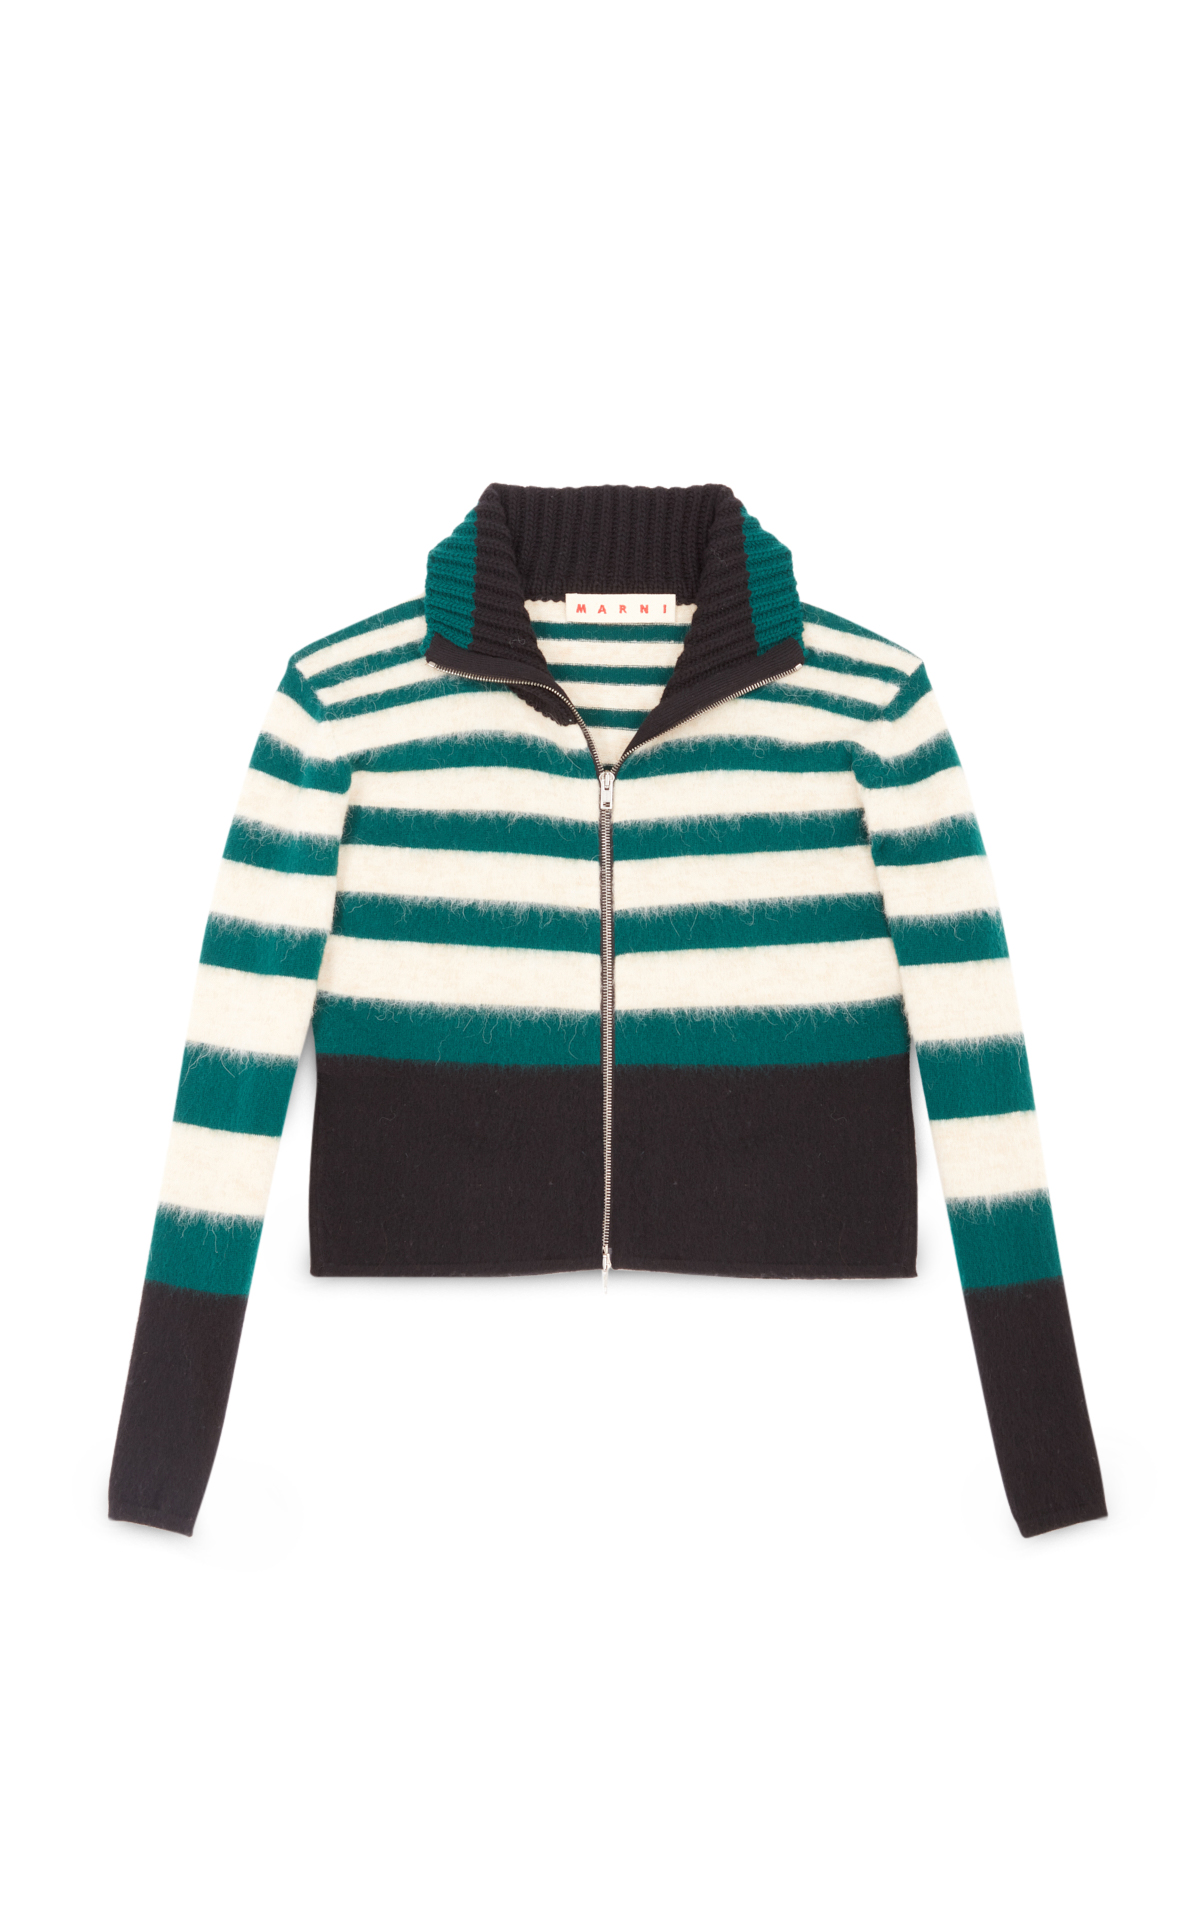 Marni Wandering in Stripes collection jumper*